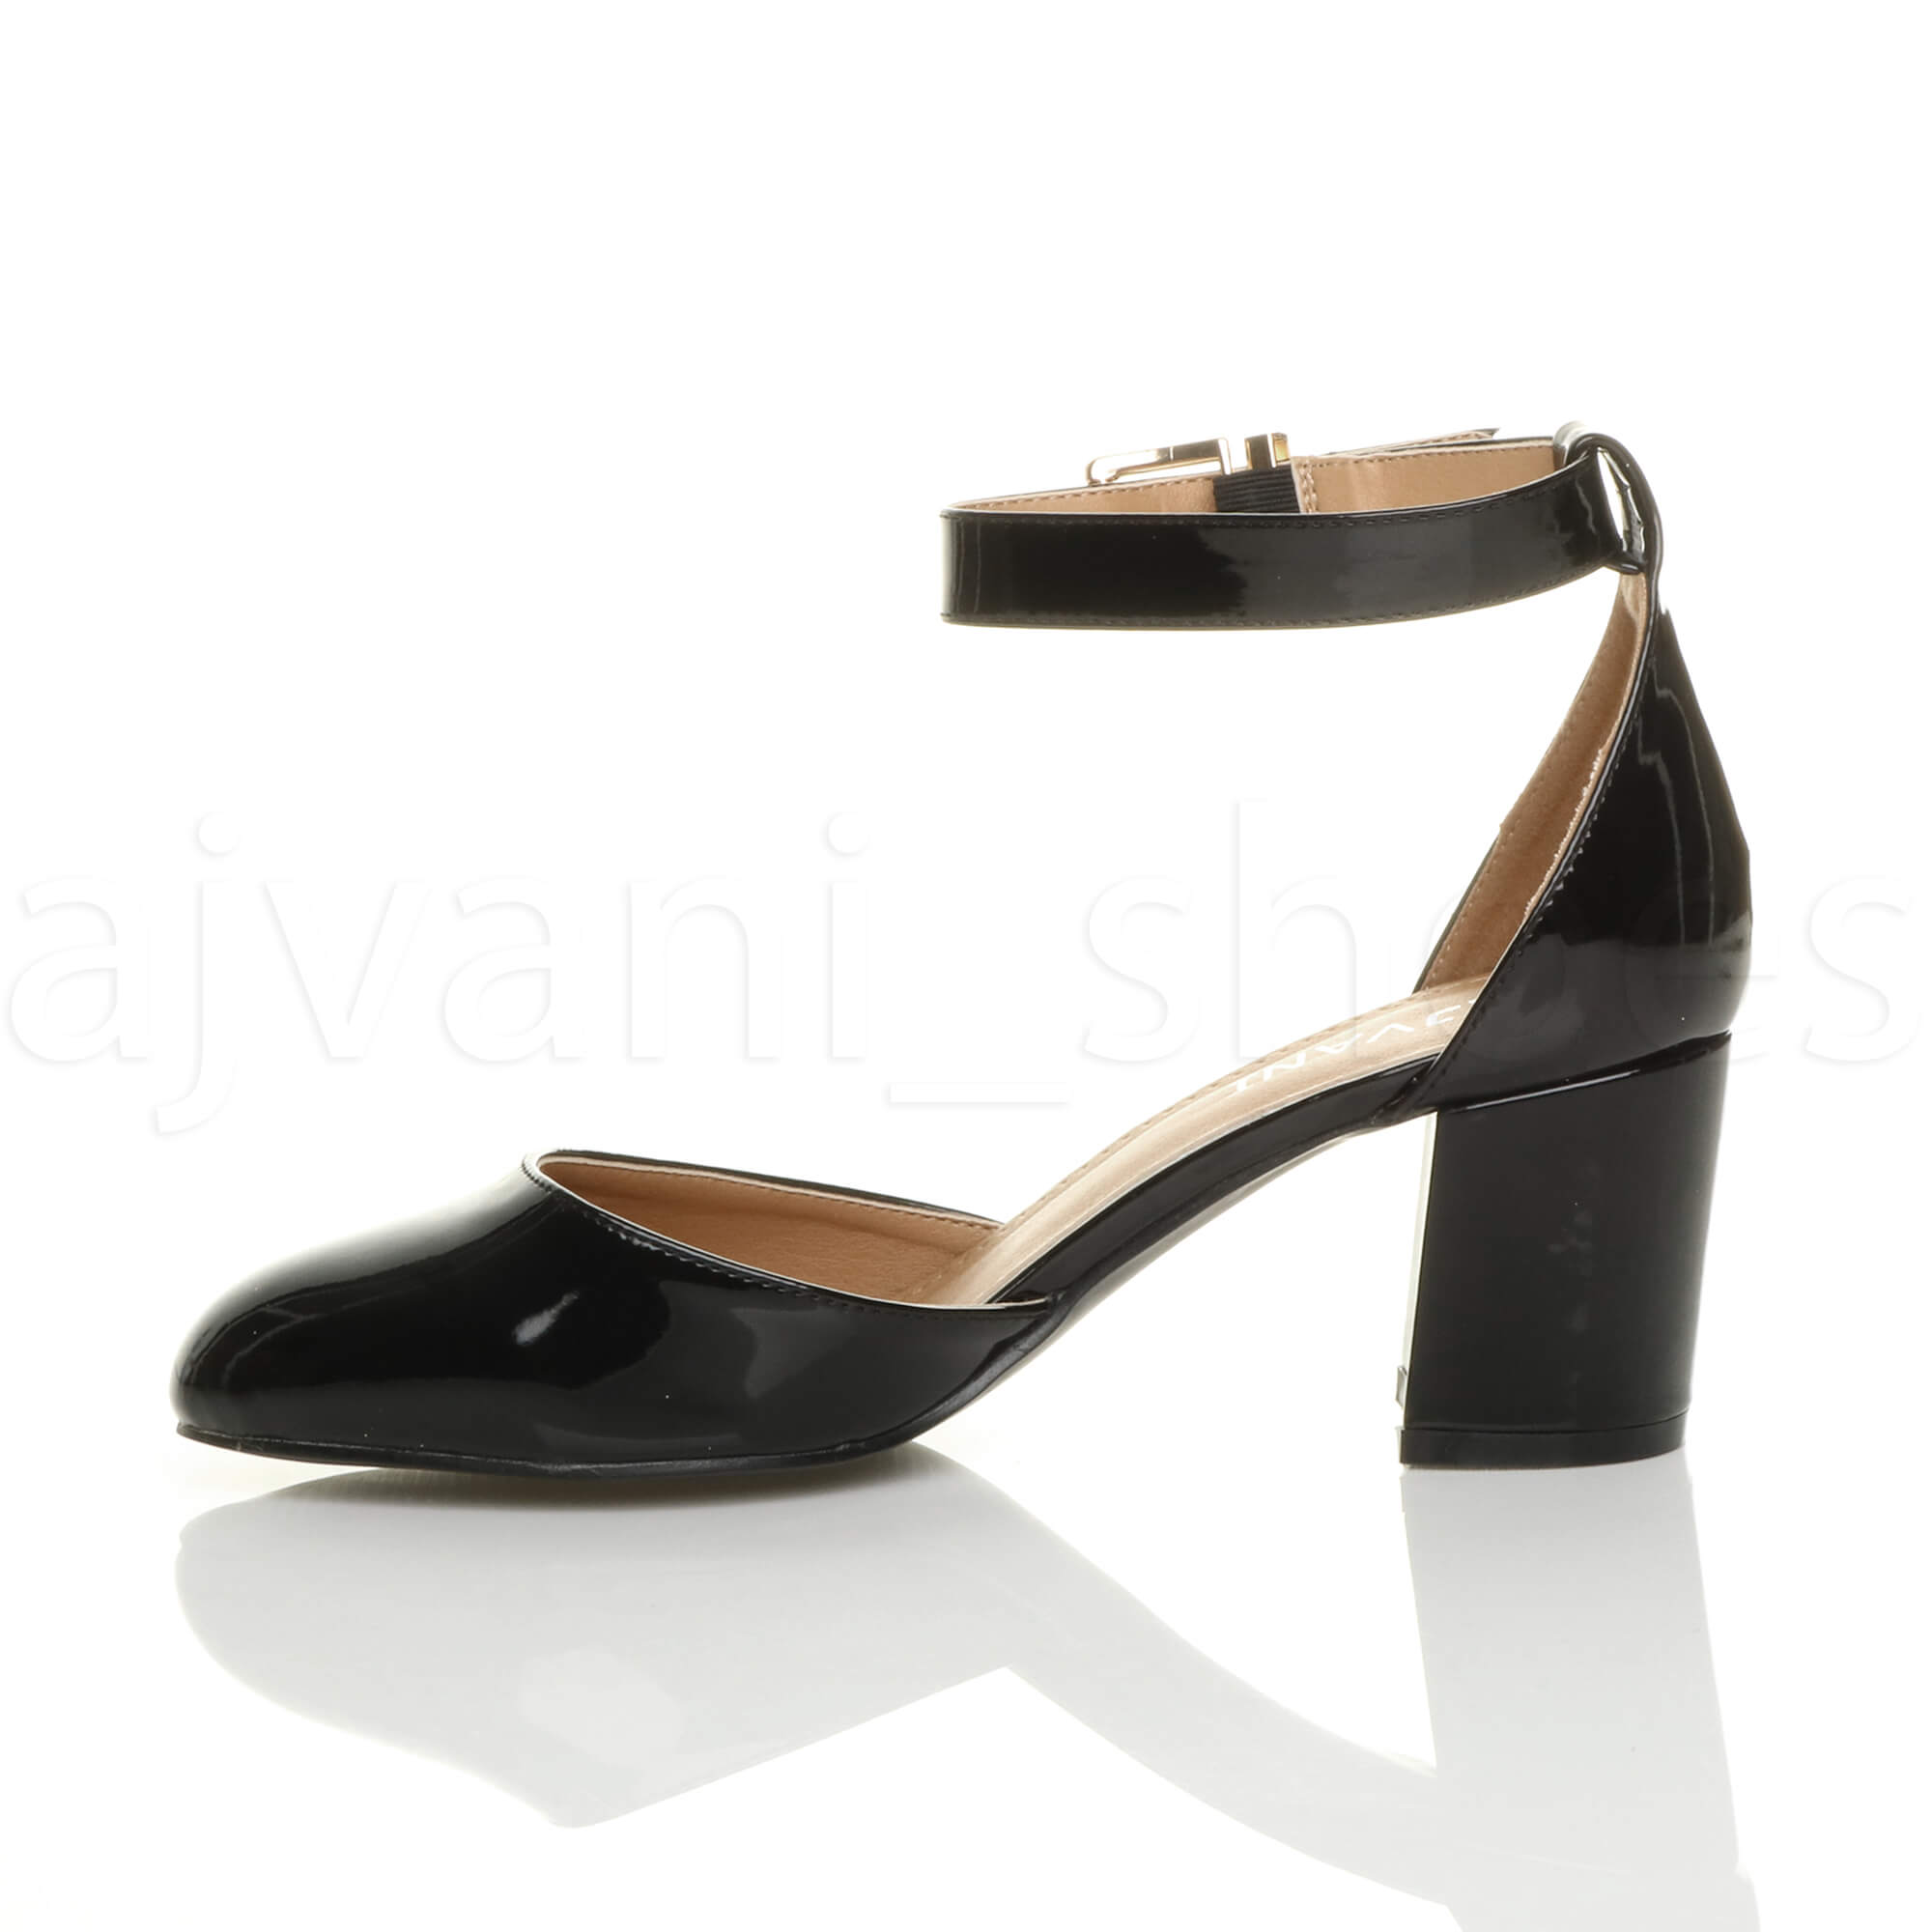 Find great deals on eBay for womens black ankle strap shoes. Shop with confidence.